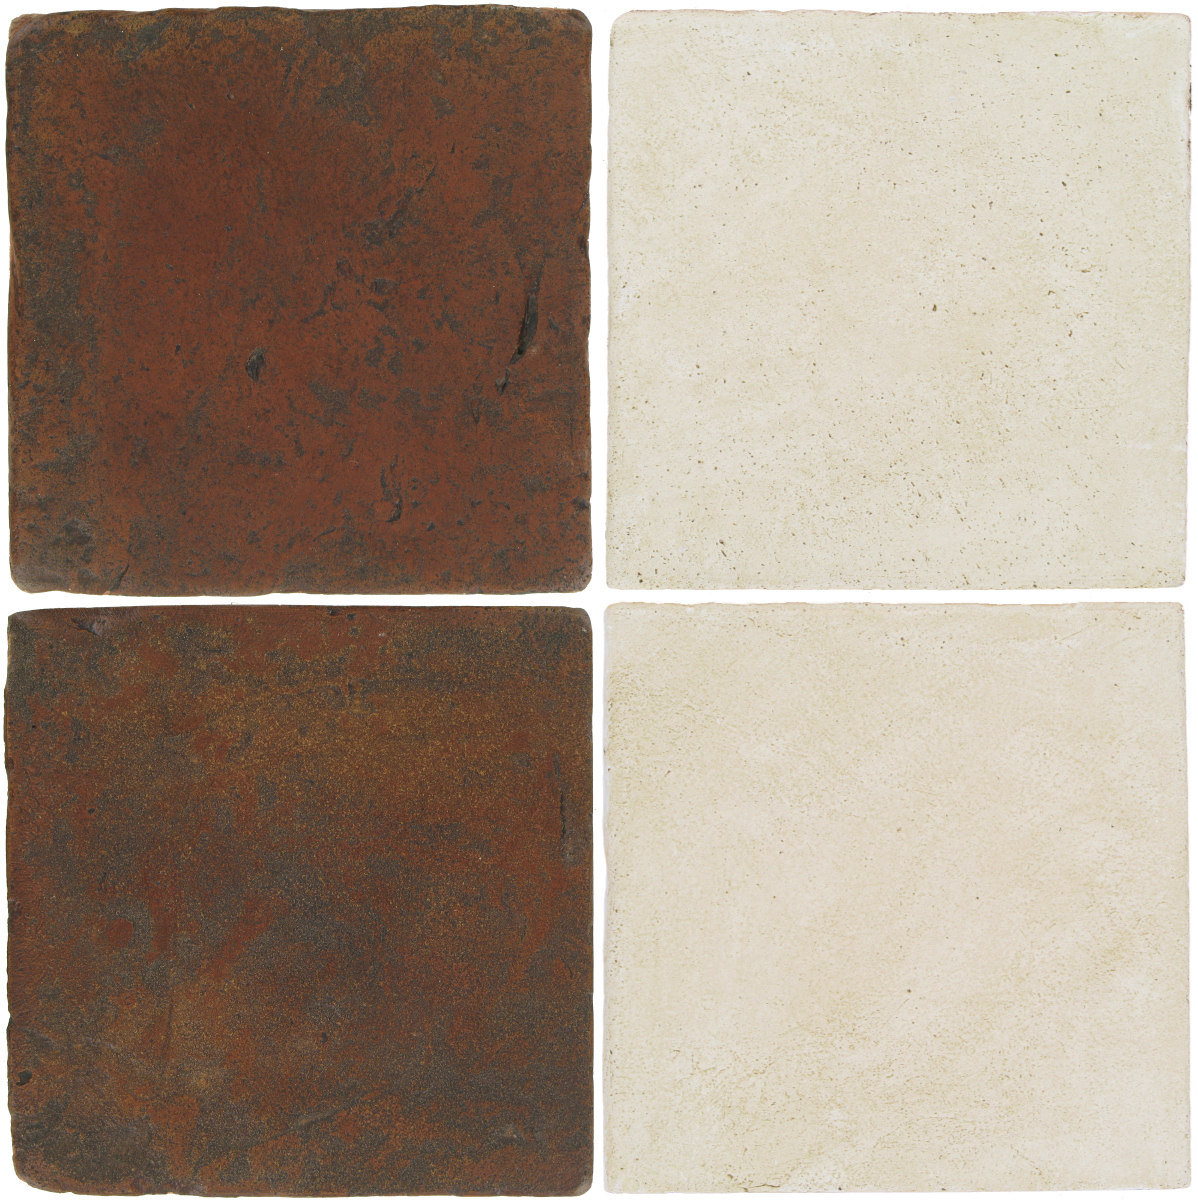 Pedralbes Antique Terracotta  2 Color Combinations  VTG-PSOW Old World + OHS-PGAW Antique White